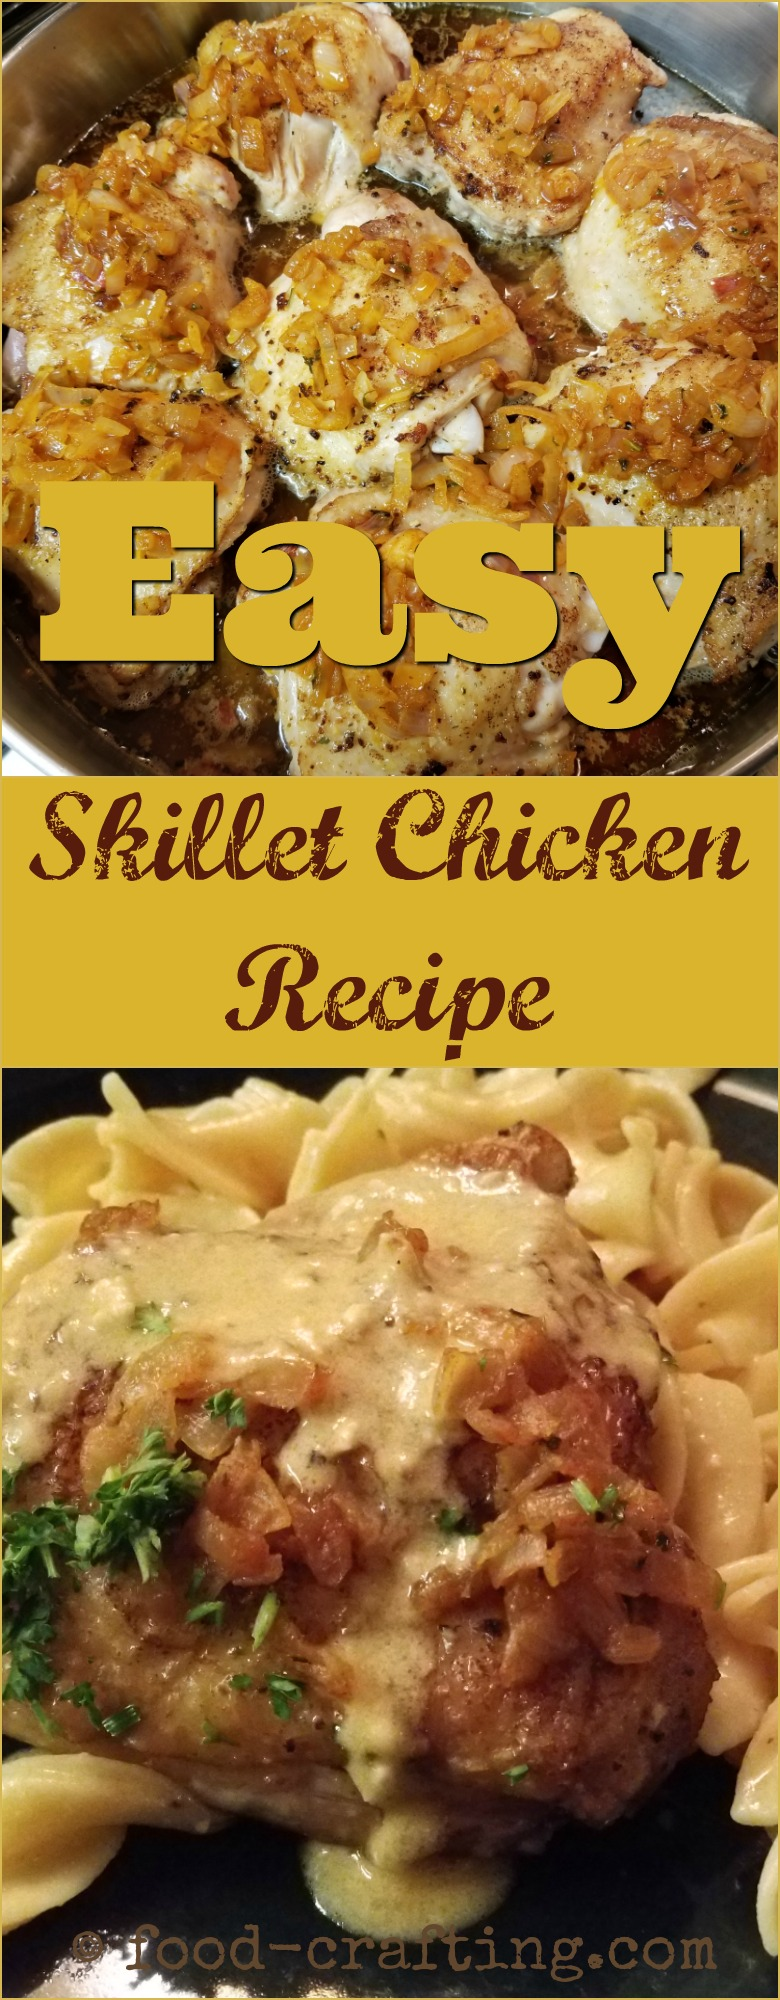 French easy skillet chicken recipe - This easy skillet chicken recipe will have you drooling over braised #chicken thighs or breasts, sautéed with lots of shallots and covered in a tangy #cheese sauce. Toss the pasta in the sauce then ladle more sauce on the chicken pieces for a satisfying, quick and #easy skillet #dinner.